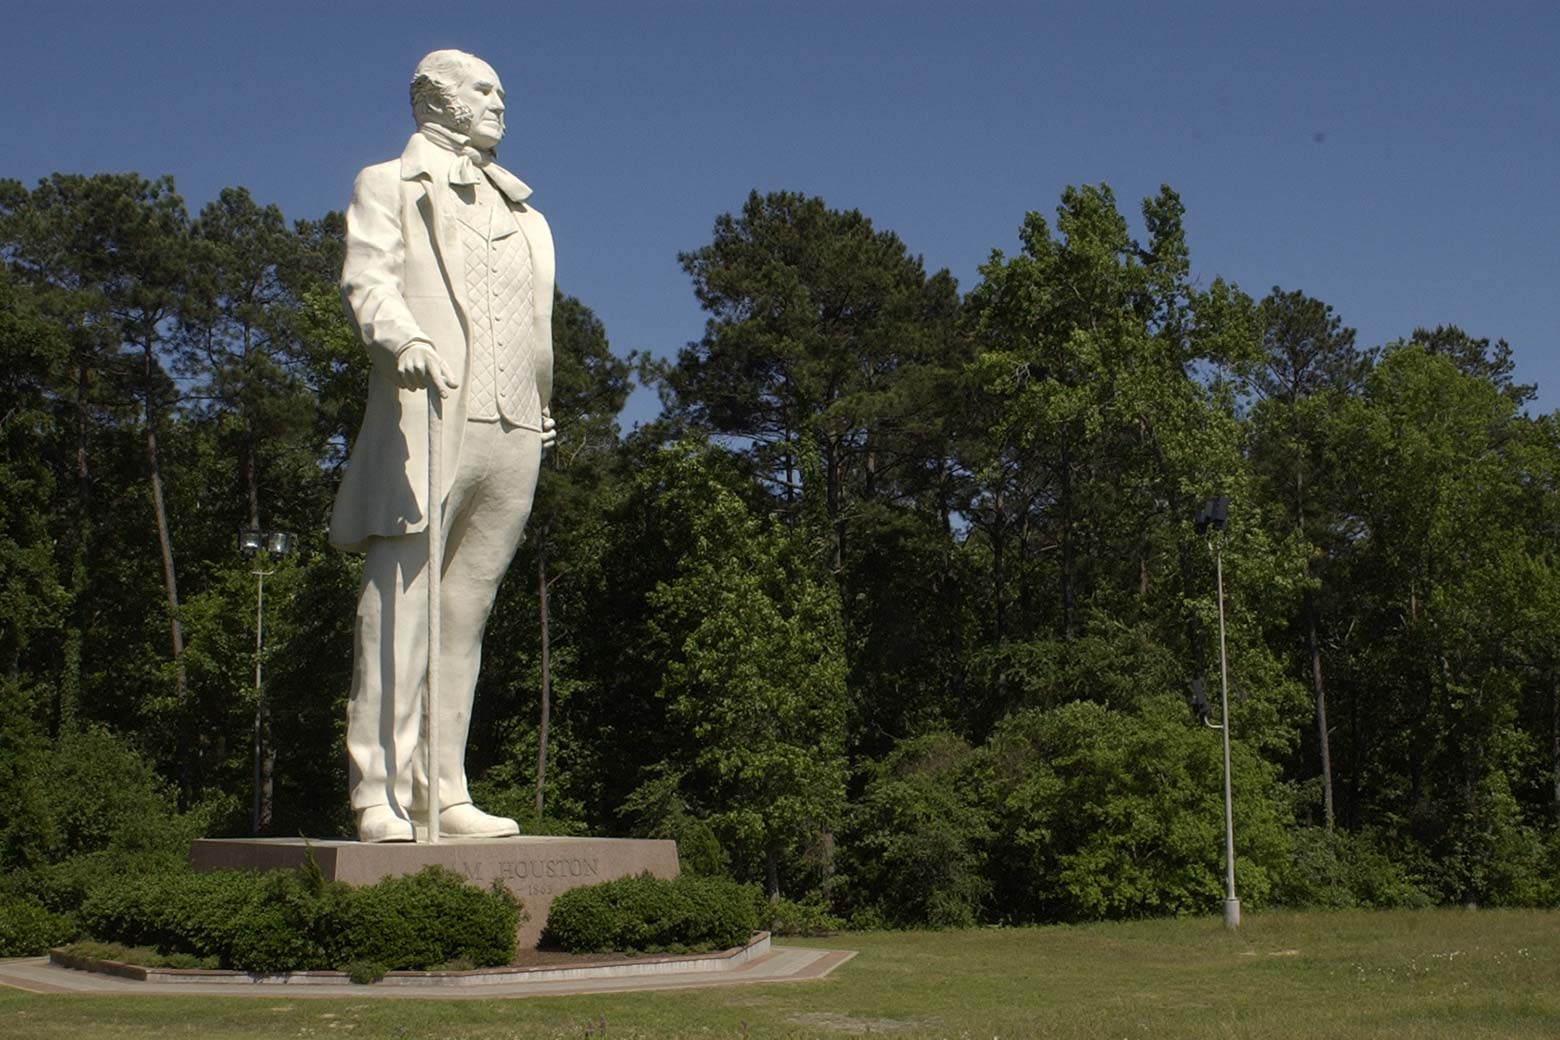 David Adickes' Sam Houston statue, as seen south of Huntsville, Texas, on May 4, 2004.